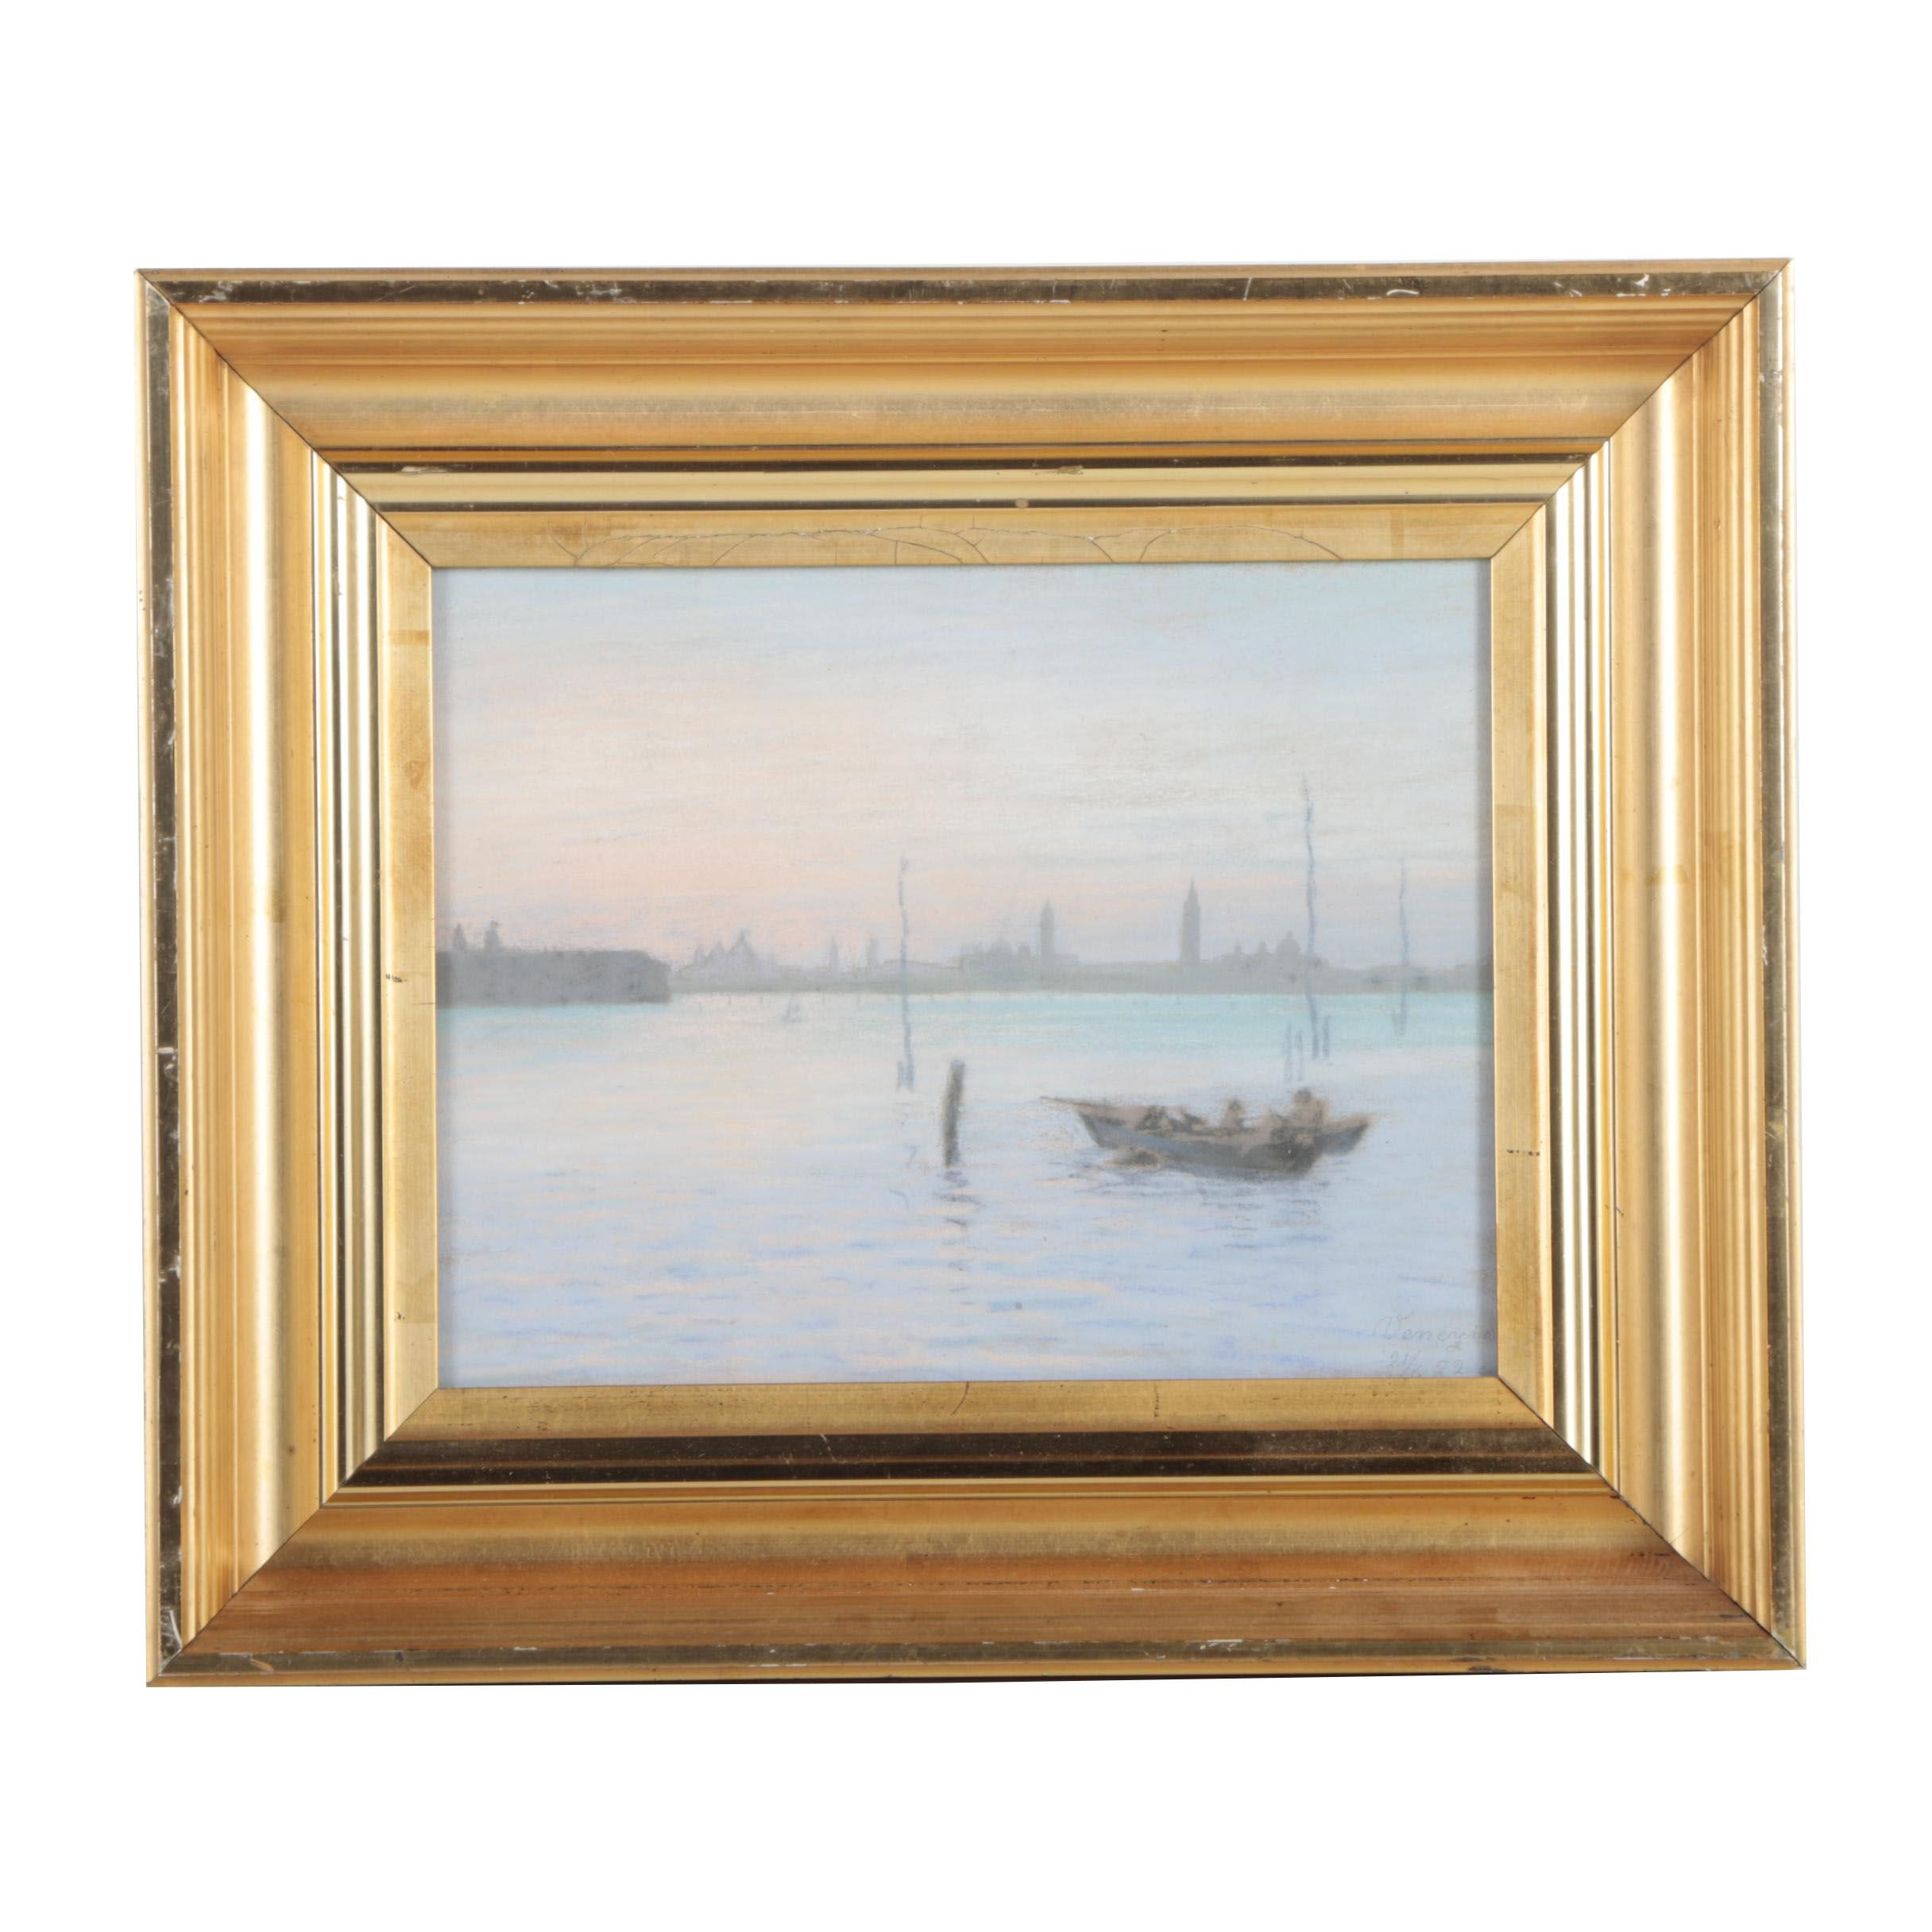 1922 Pastel Drawing Attributed to Venezia